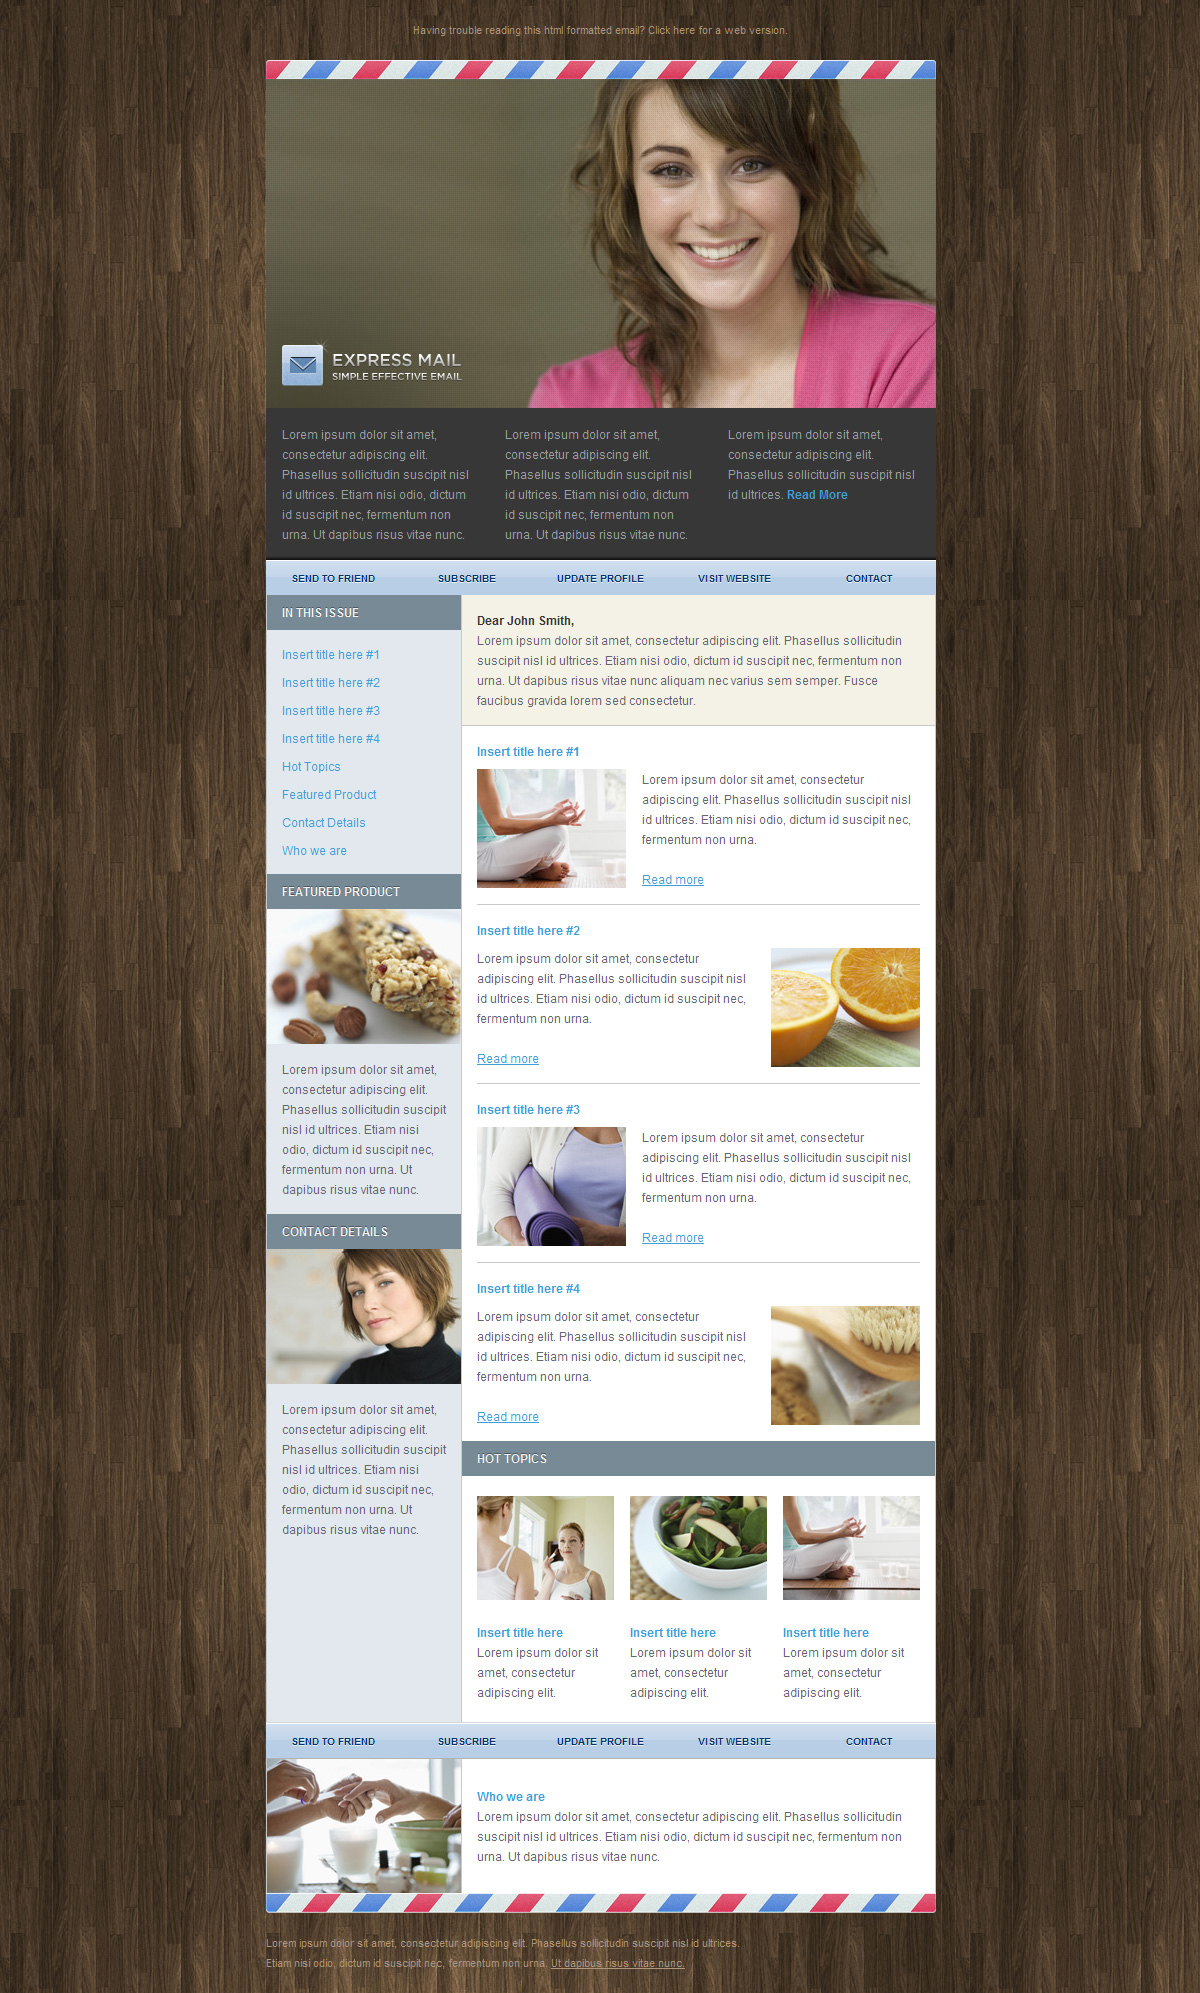 Express Mail Newsletter Template (5 Themes) - Screenshot 03 - Wood